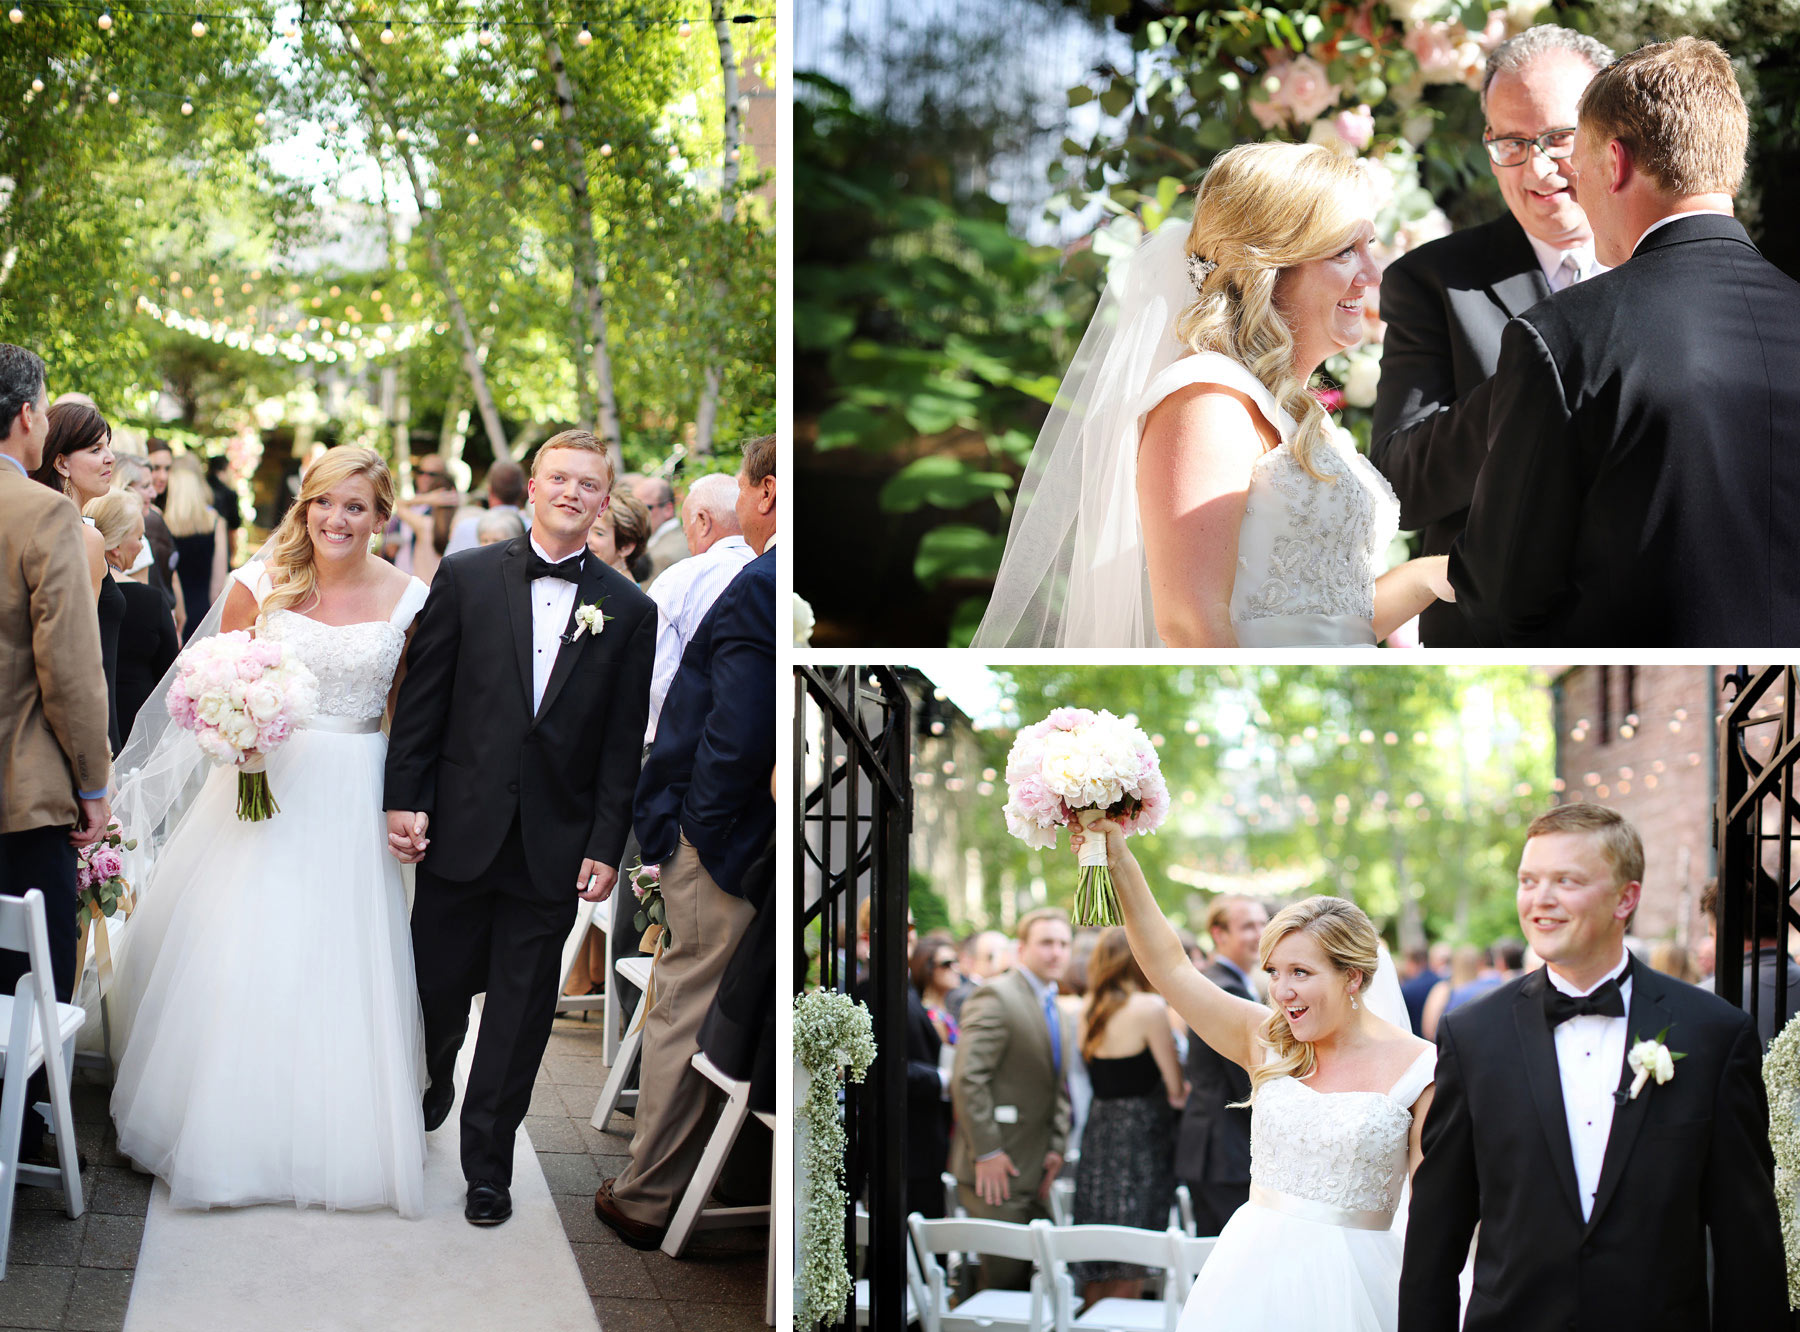 11-Minneapolis-Minnesota-Wedding-Photography-by-Vick-Photography-Van-Dusen-Mansion-Outdoor-Ceremony-Taryn-&-Scott.jpg